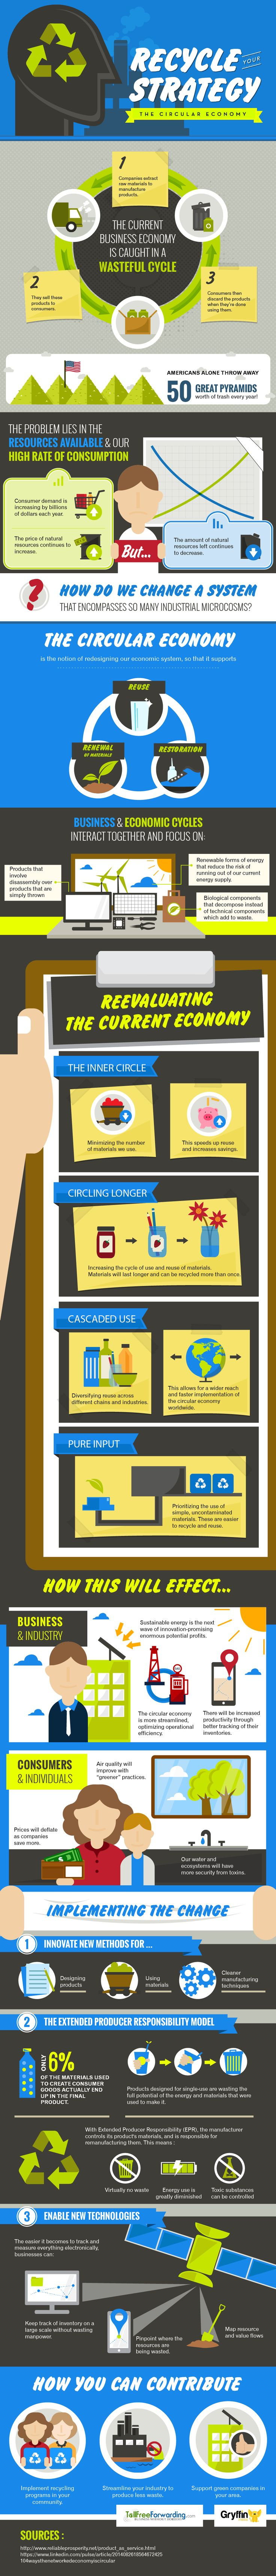 Recycle Your Strategy: The Circular Economy #infographic #Economy #Recycle #Business